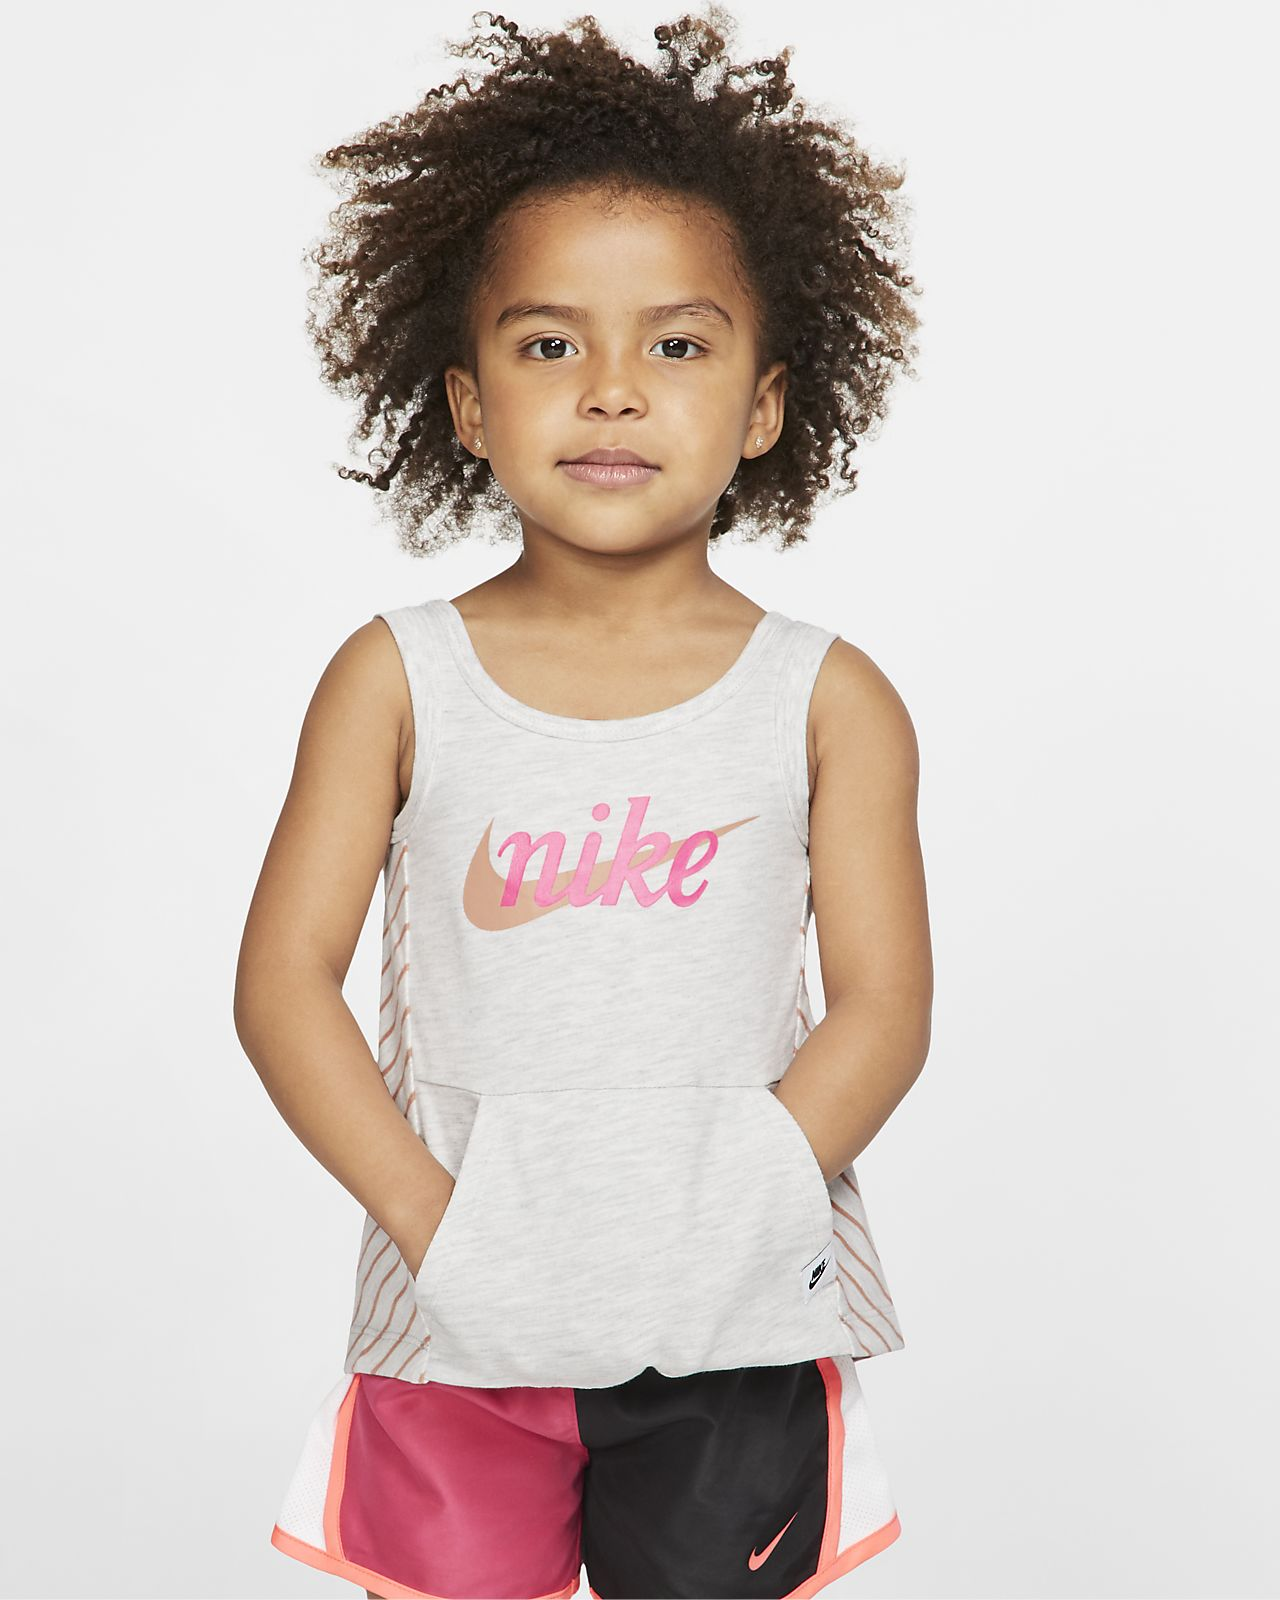 Nike Sportswear Toddler Sleeveless Top